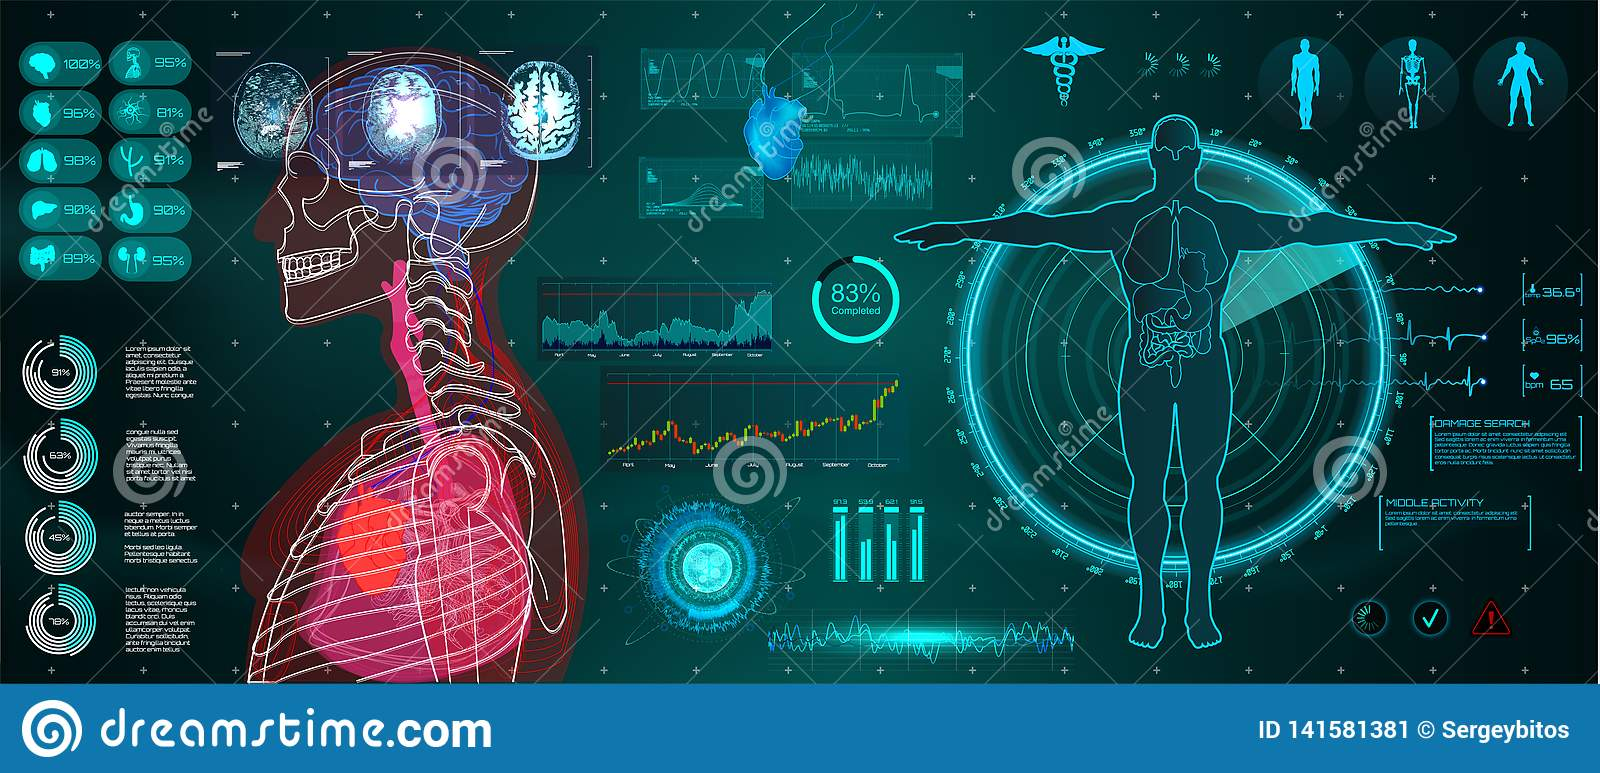 A modern medical interface for monitoring human scanning and analysis